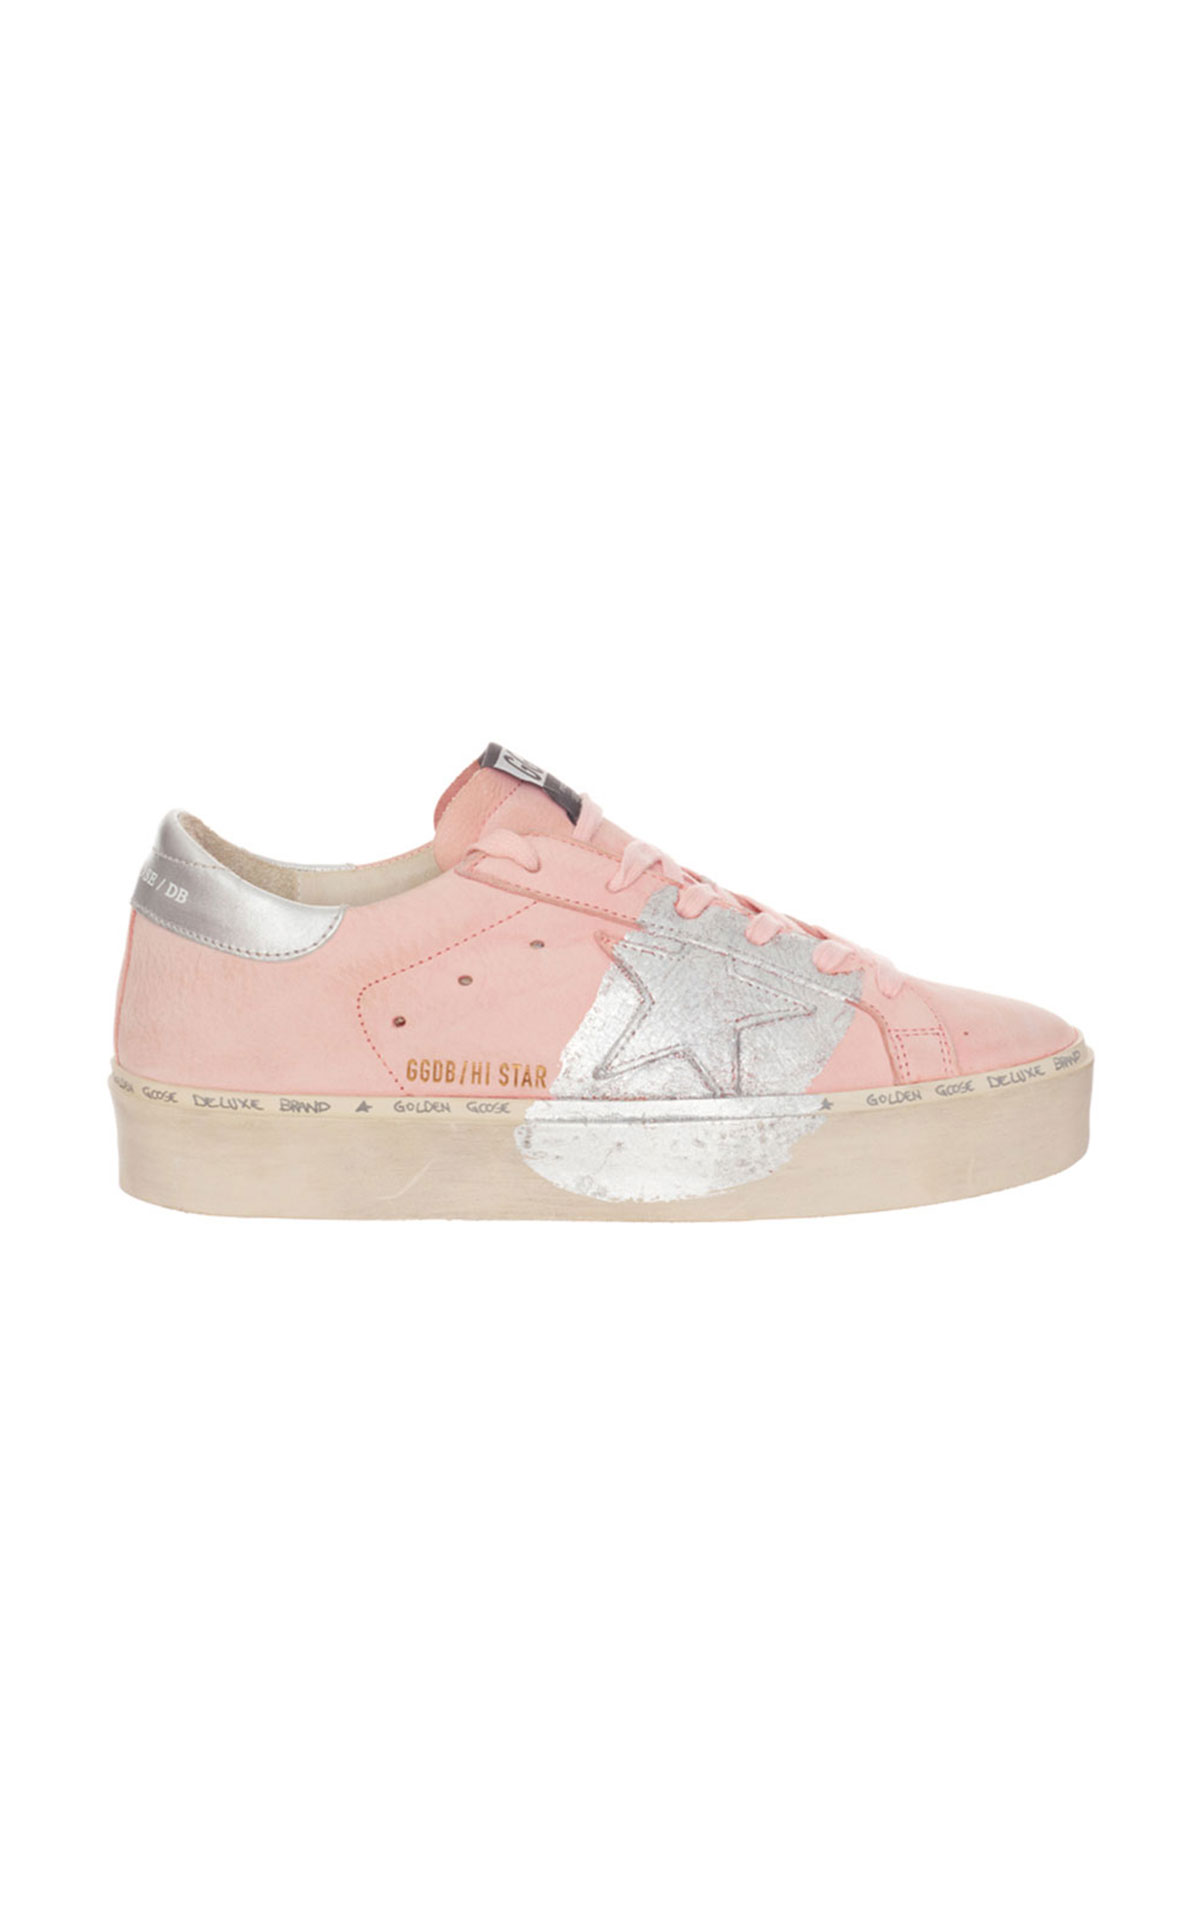 Golden Goose Powder nubuck silver star trainer from Bicester Village